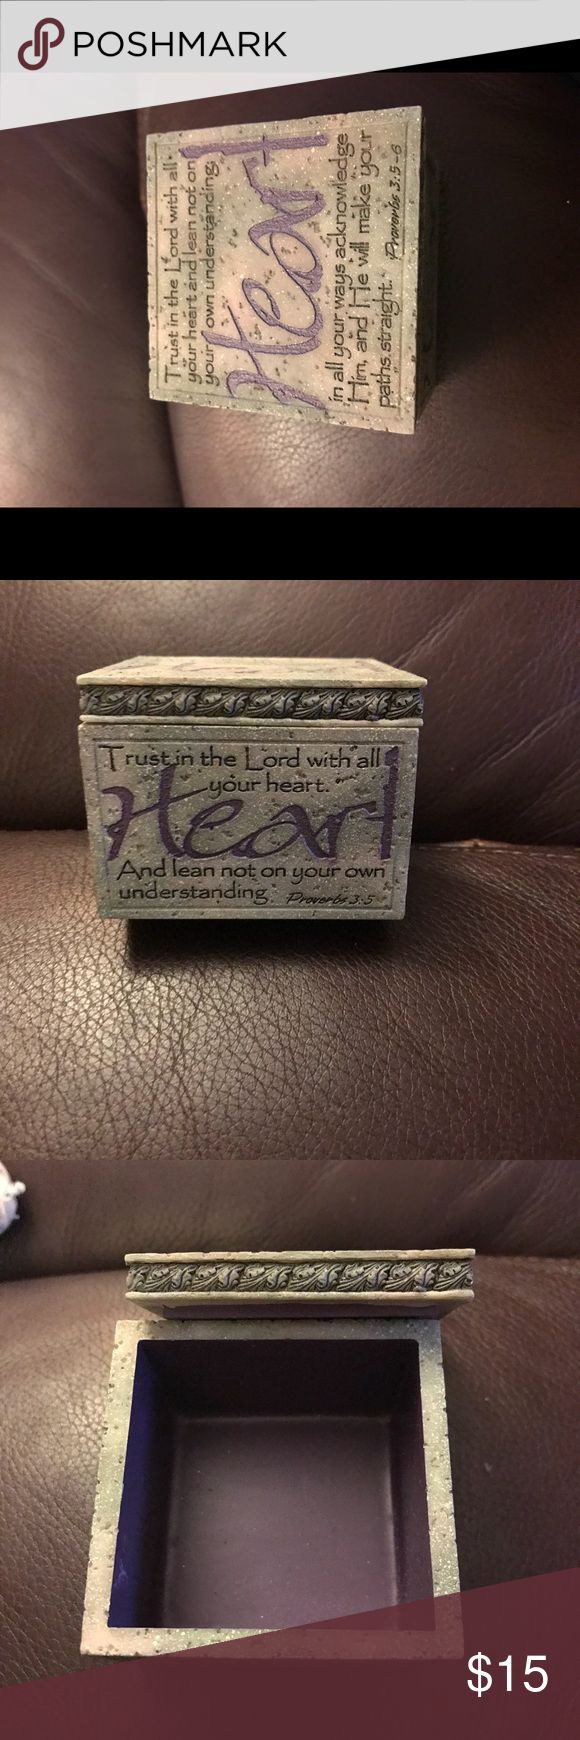 Beautiful inscribed jewelry box Cute small jewelry box with inscription about Trust in the lord and a purple inside. The outside color is more of a stone color Other